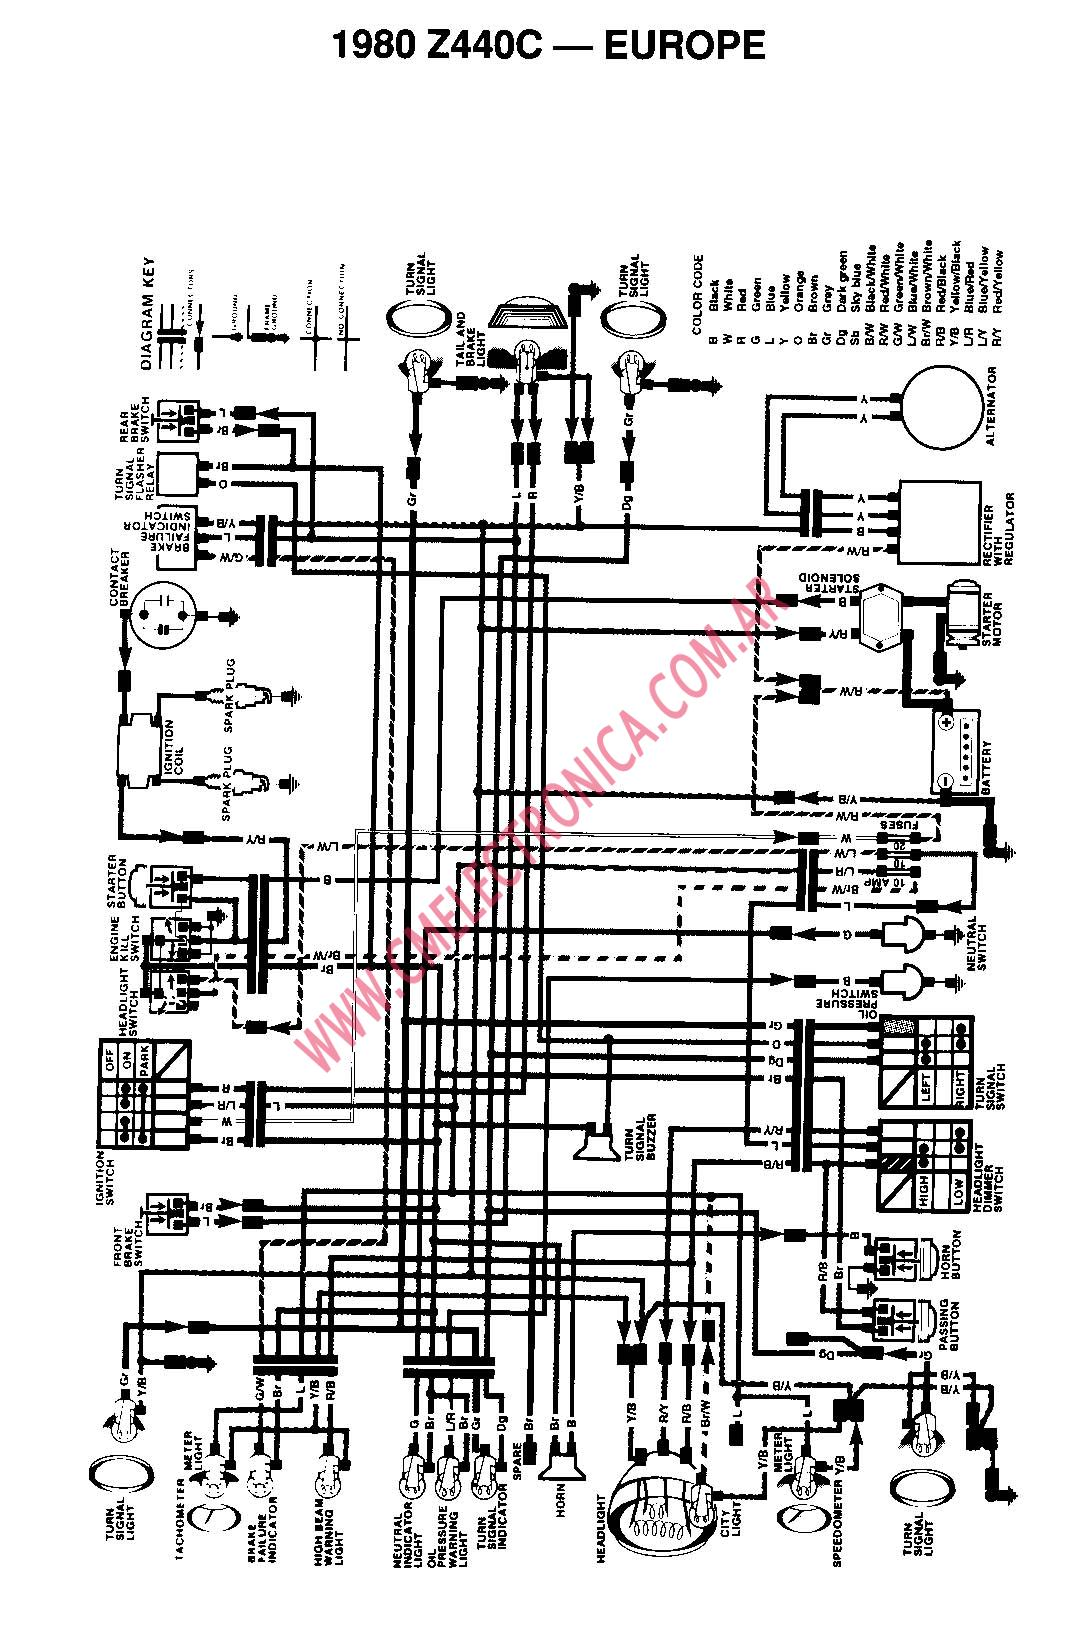 Kawasaki Bayou Klf300 Wiring Diagram Get Free Image About on Kawasaki Klr 650 Wiring Diagram